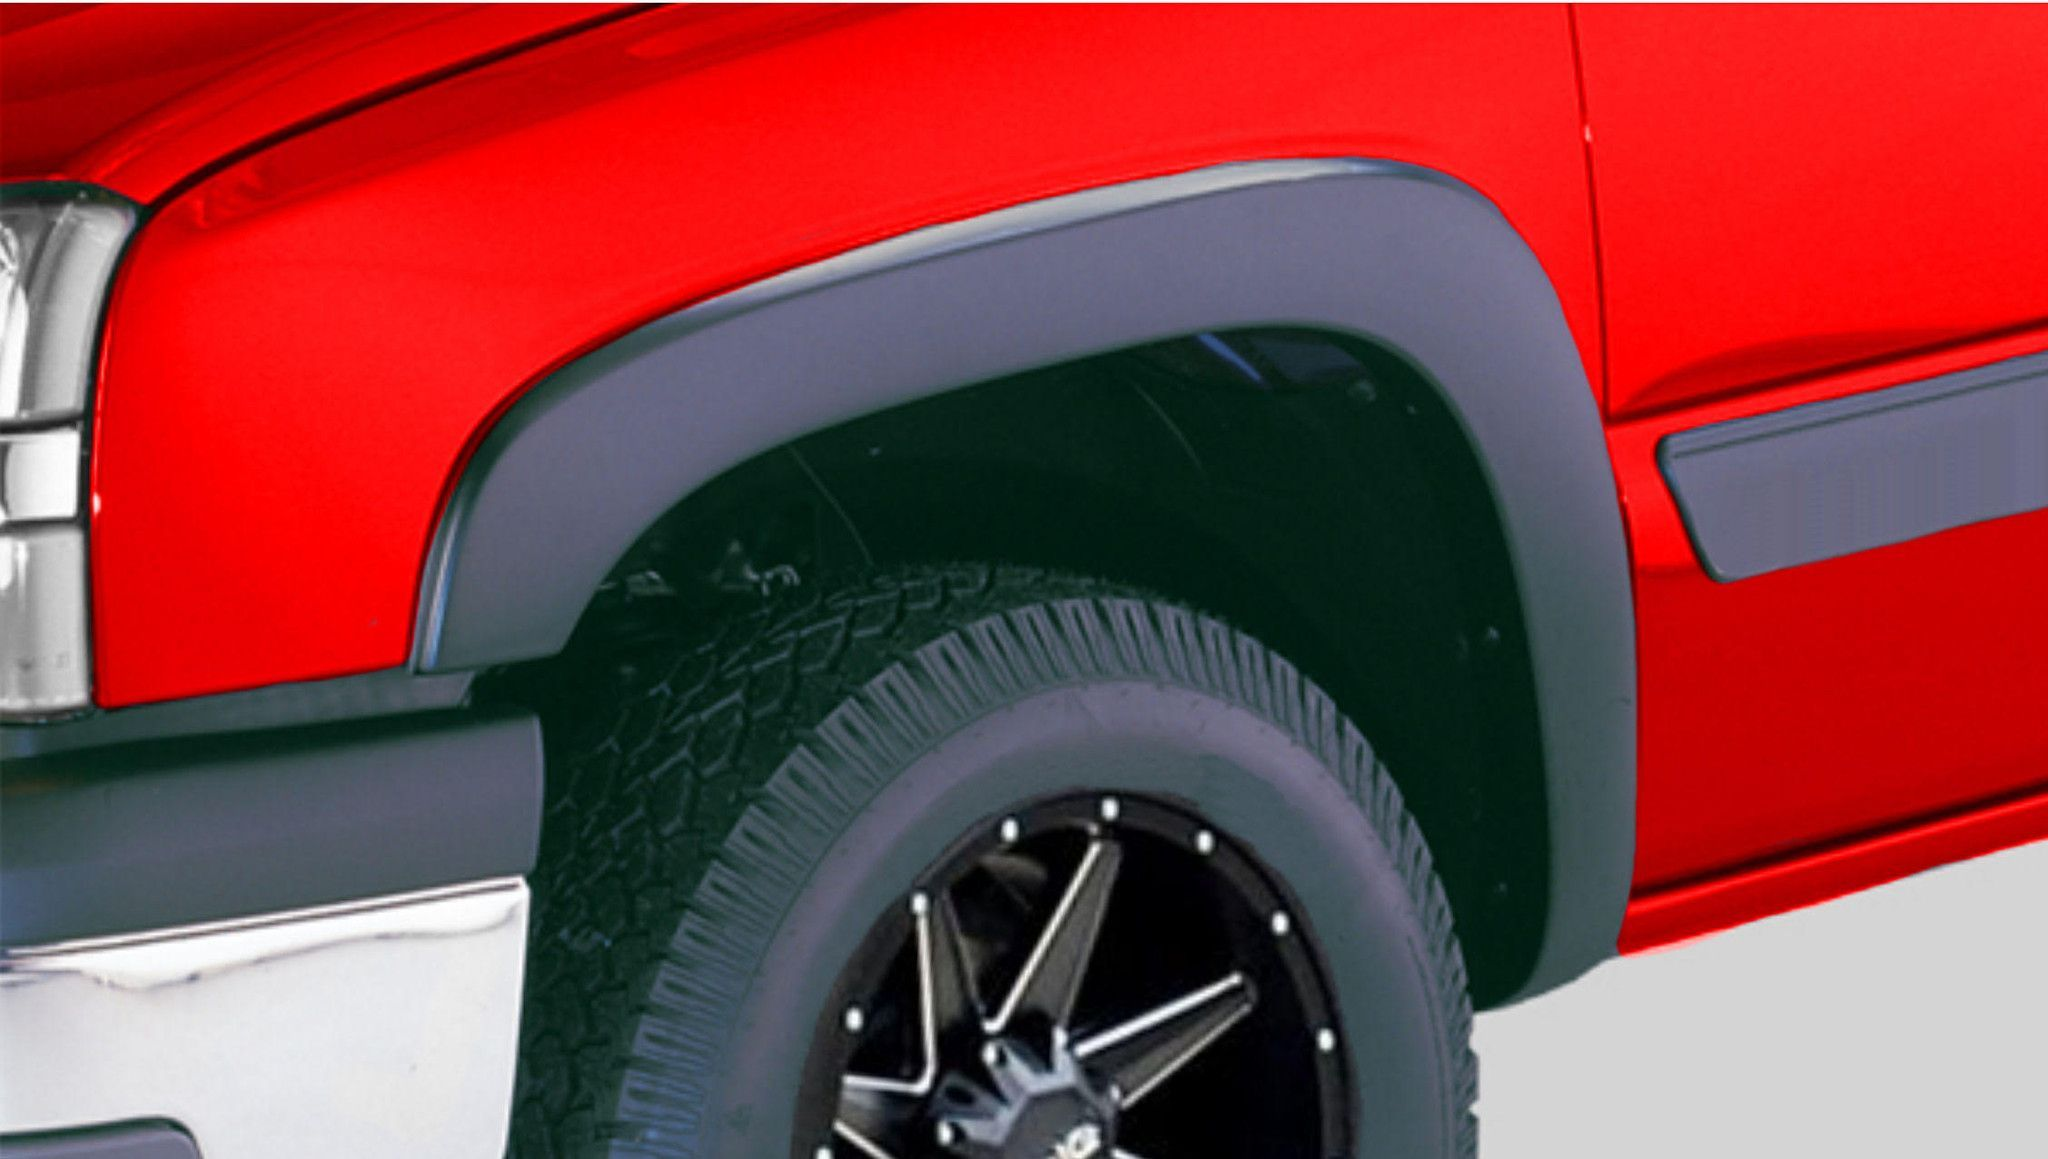 hight resolution of fender flares fit 99 06 chevrolet avalanche suburban and gmc sierra yukon xl set of 4 paintable matte black